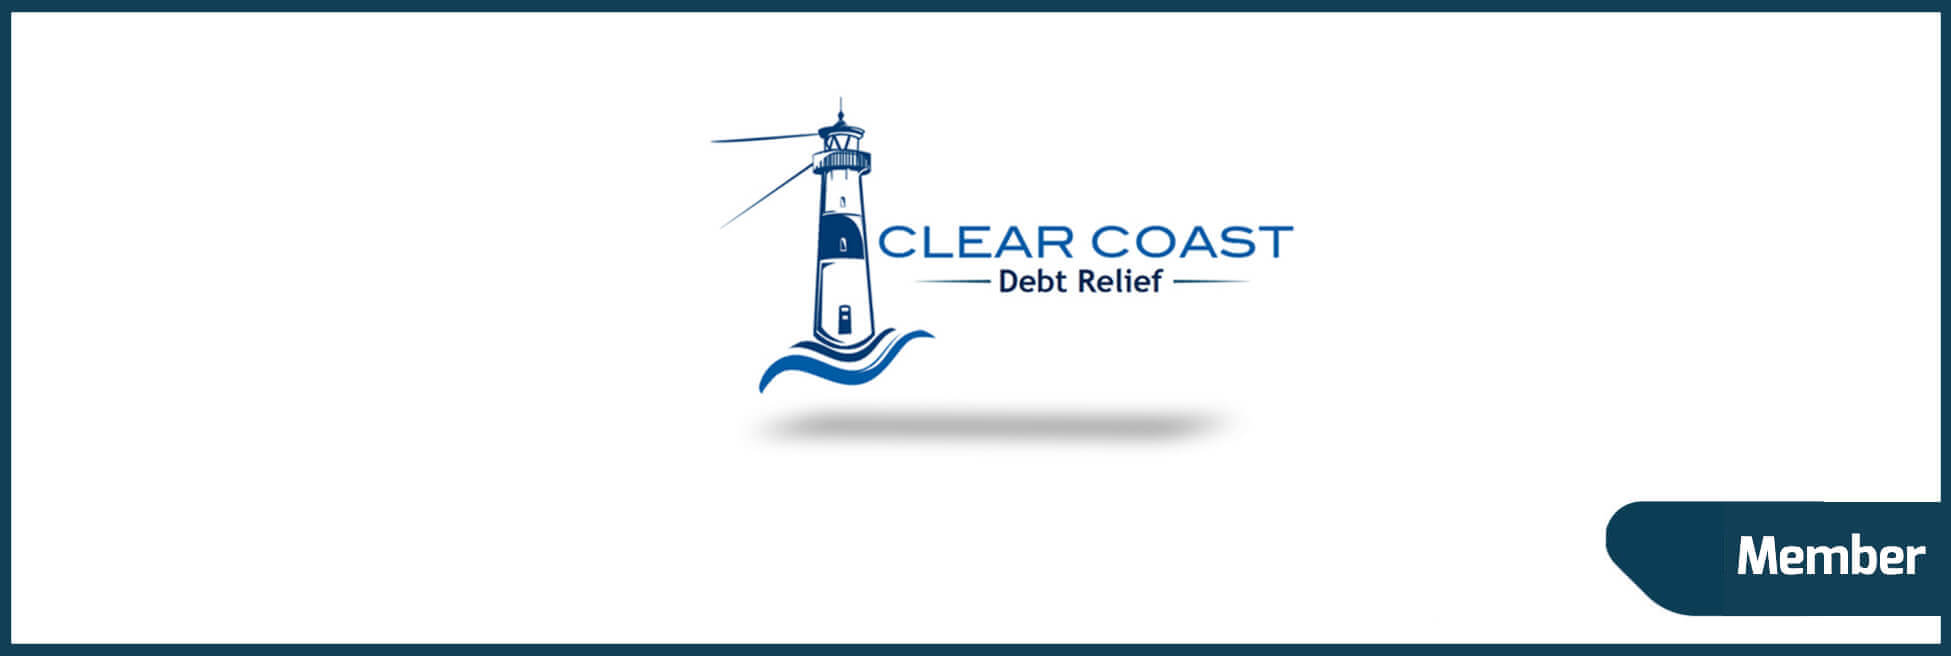 Clear Coast Debt Relief